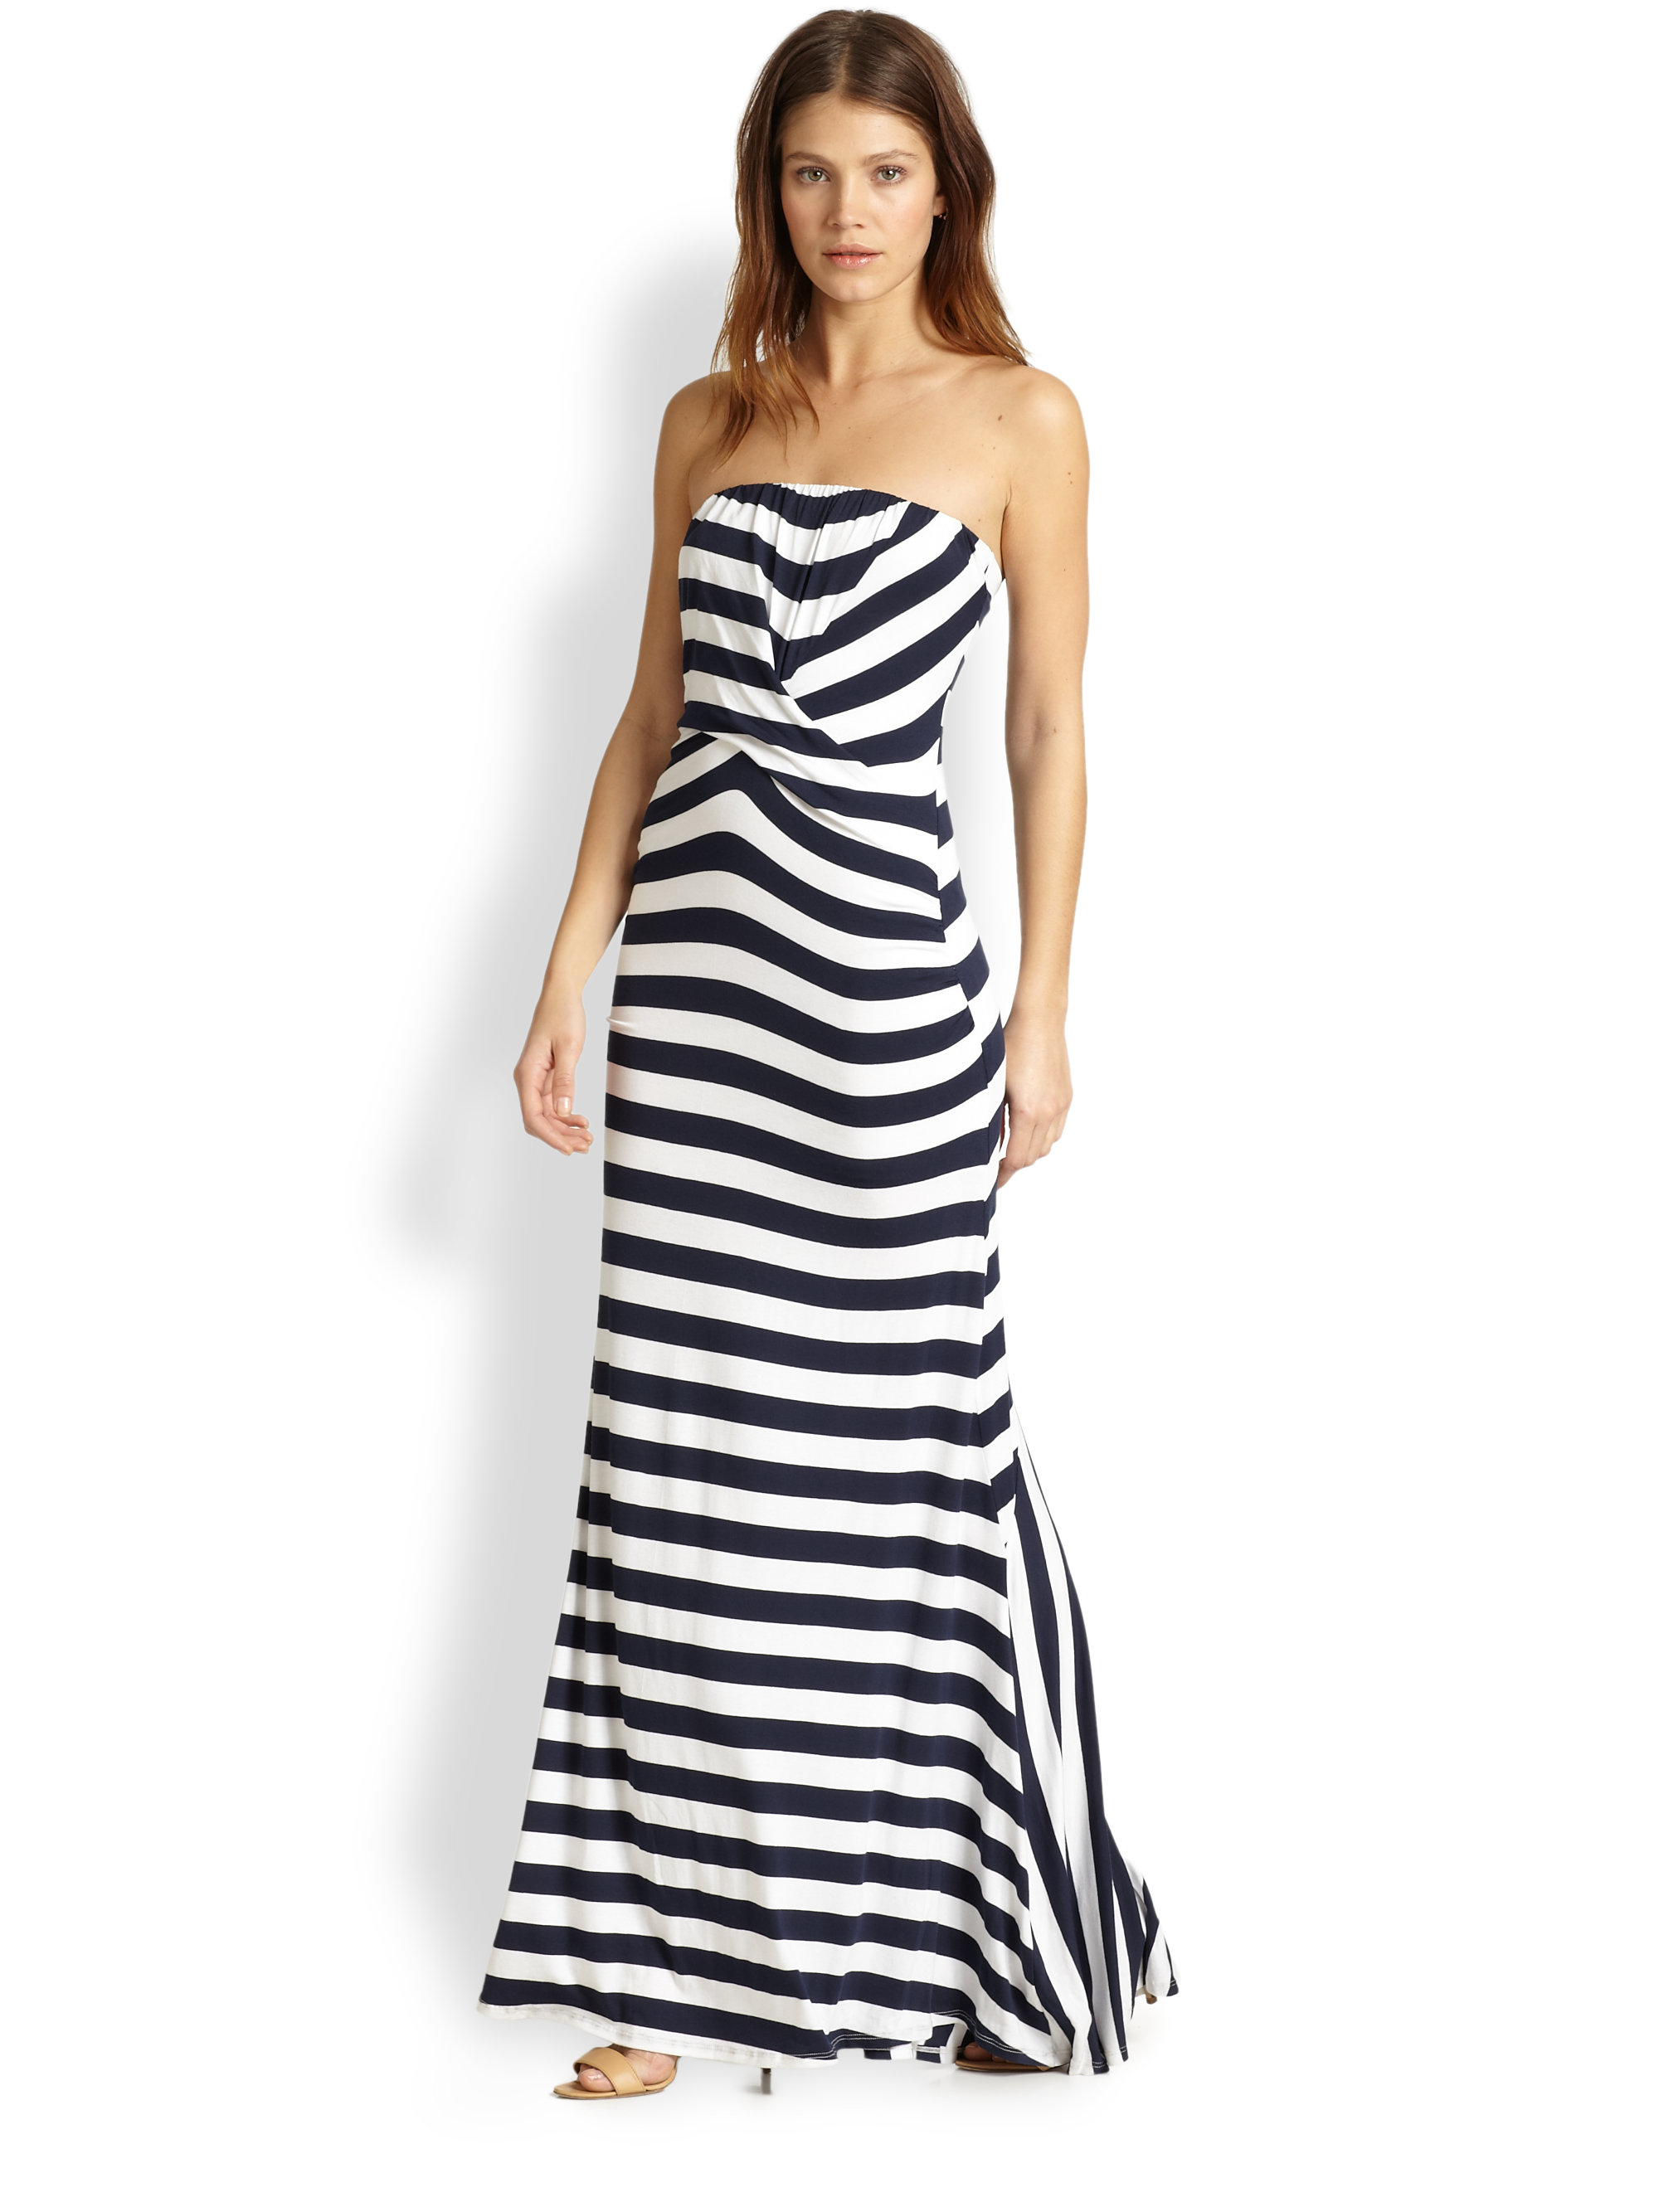 Find and save ideas about Strapless maxi dresses on Pinterest. | See more ideas about Maxi dress outfits, Dresses to wear to a wedding and Cruise formal night. Women's fashion Striped Strapless Maxi Dress More.